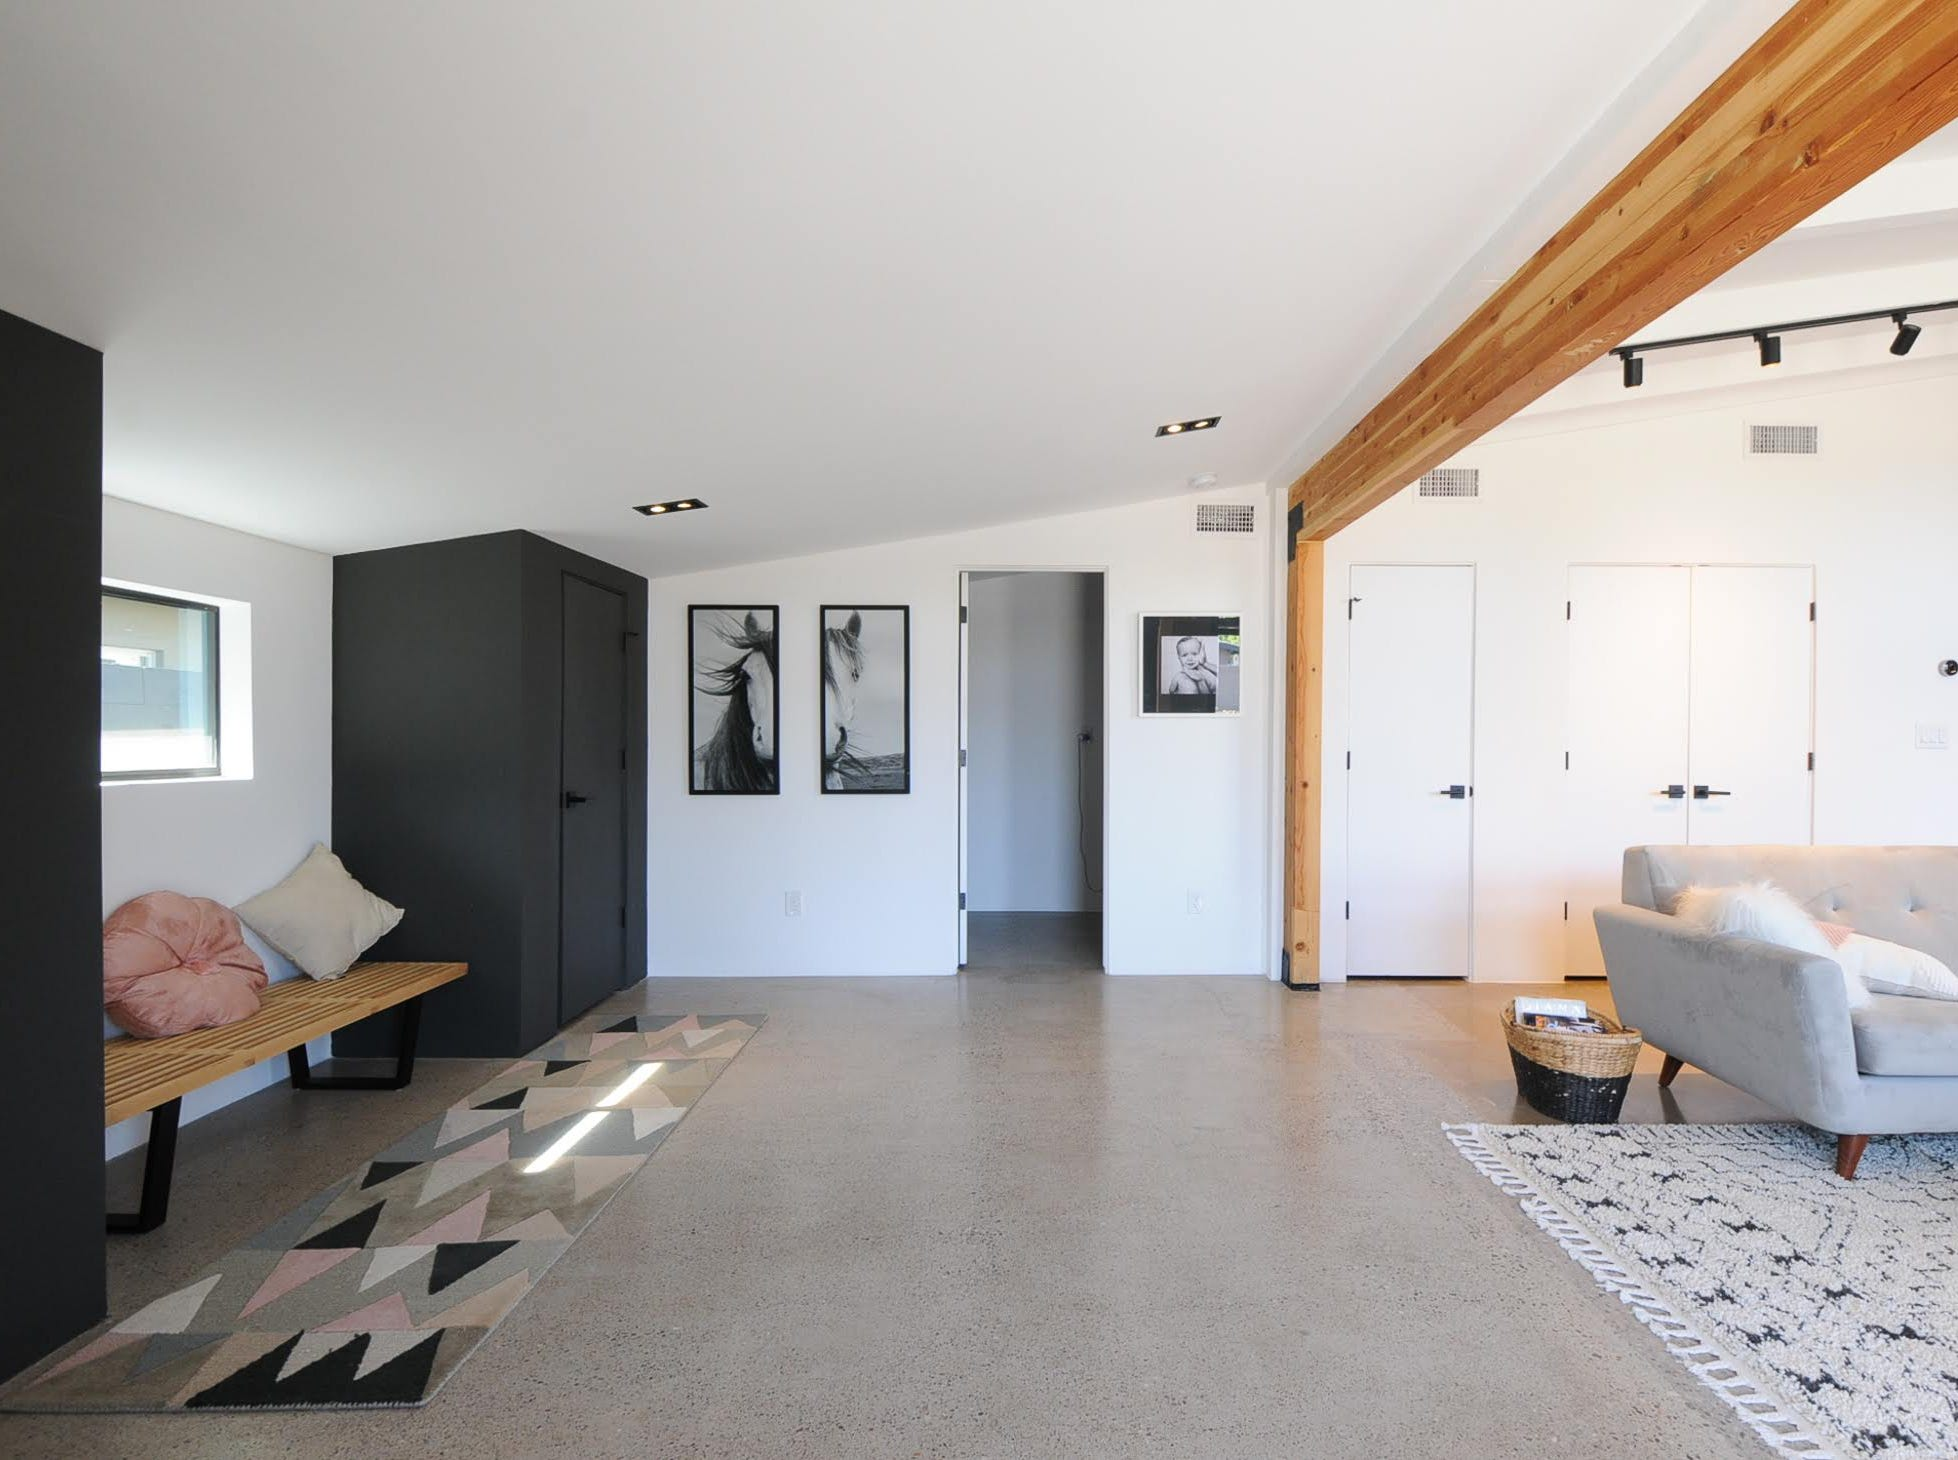 Storage, seating, art and open space greet visitors at the Haver home Gwilliam and Peterson own.